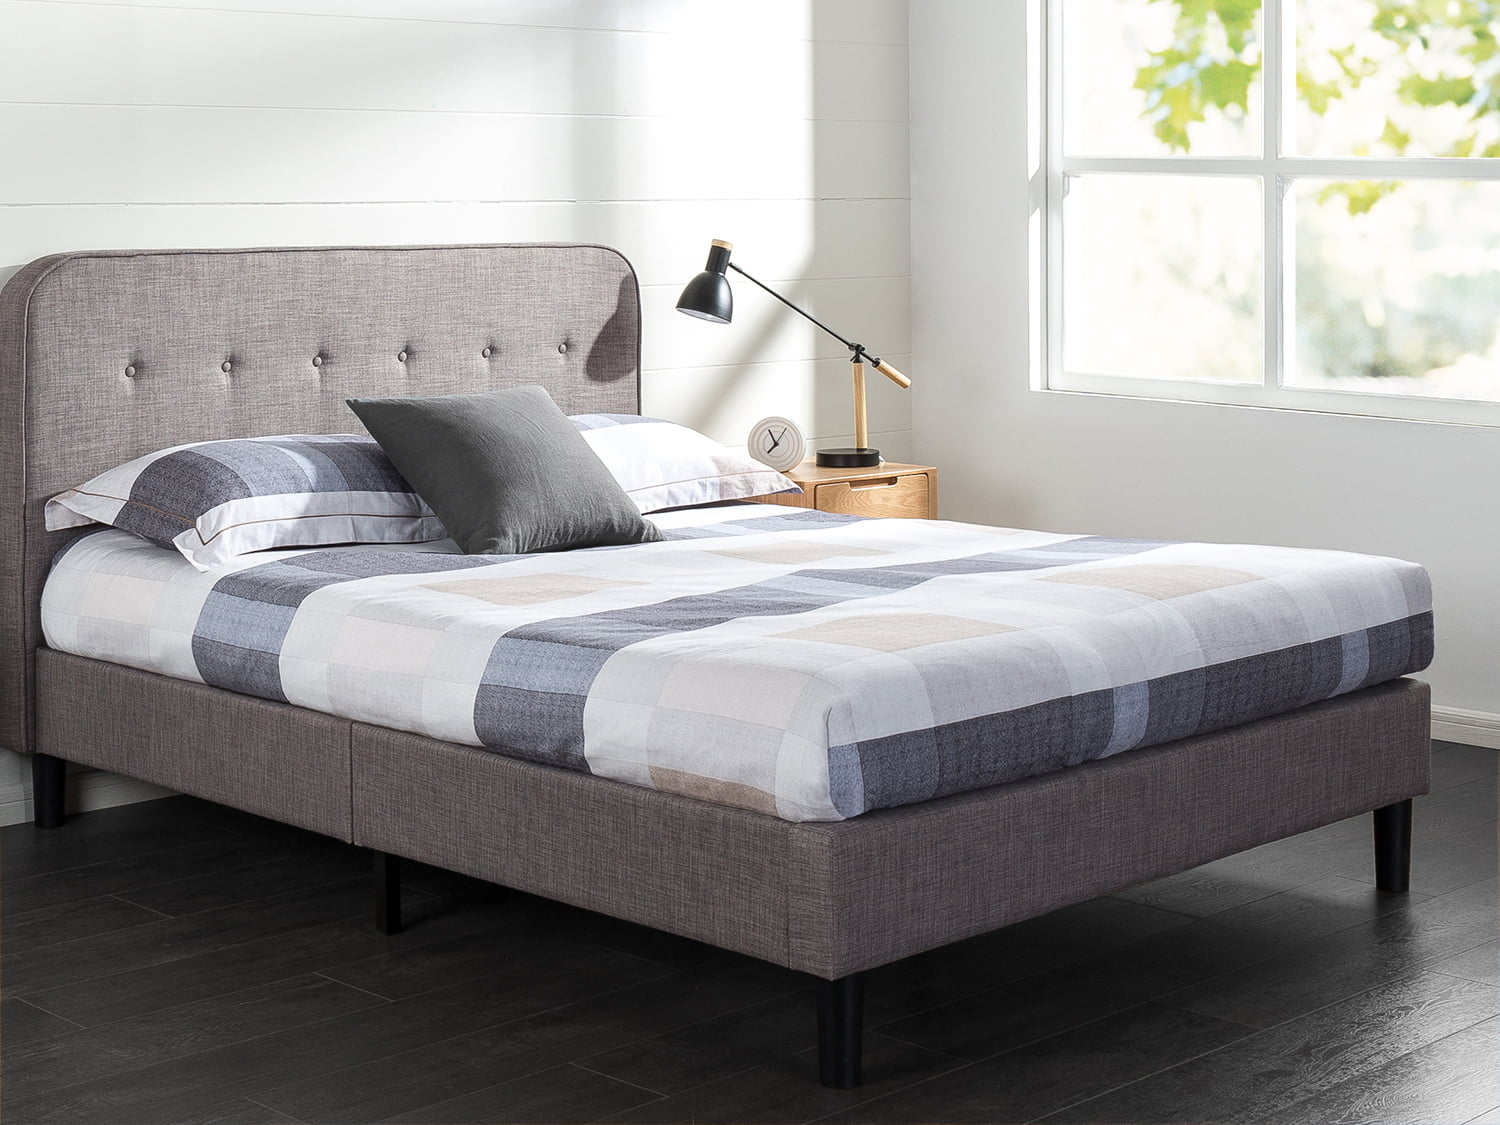 Bed Shops Reading Beds Twin Full Queen King Size Beds Walmart